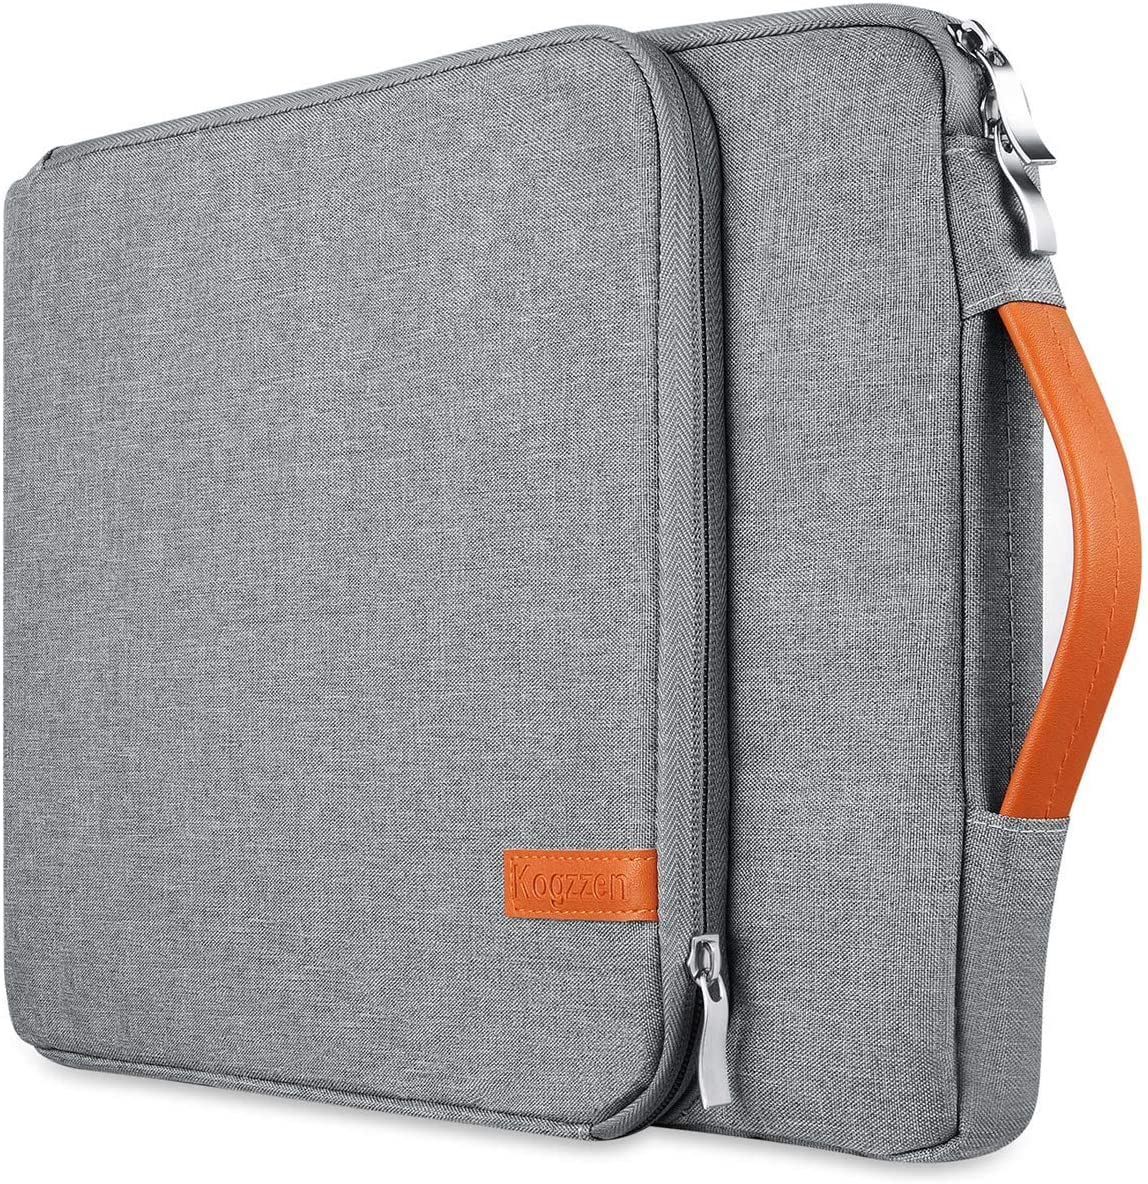 Kogzzen 13 13.3 13.5 Inch Laptop Sleeve Compatible with MacBook Air 13.3/ MacBook Pro 13/ Dell XPS 13/ Surface Laptop 13.5/ iPad Pro 12.9, HP Lenovo Asus Acer Chromebook Waterproof Case Bag - Gray